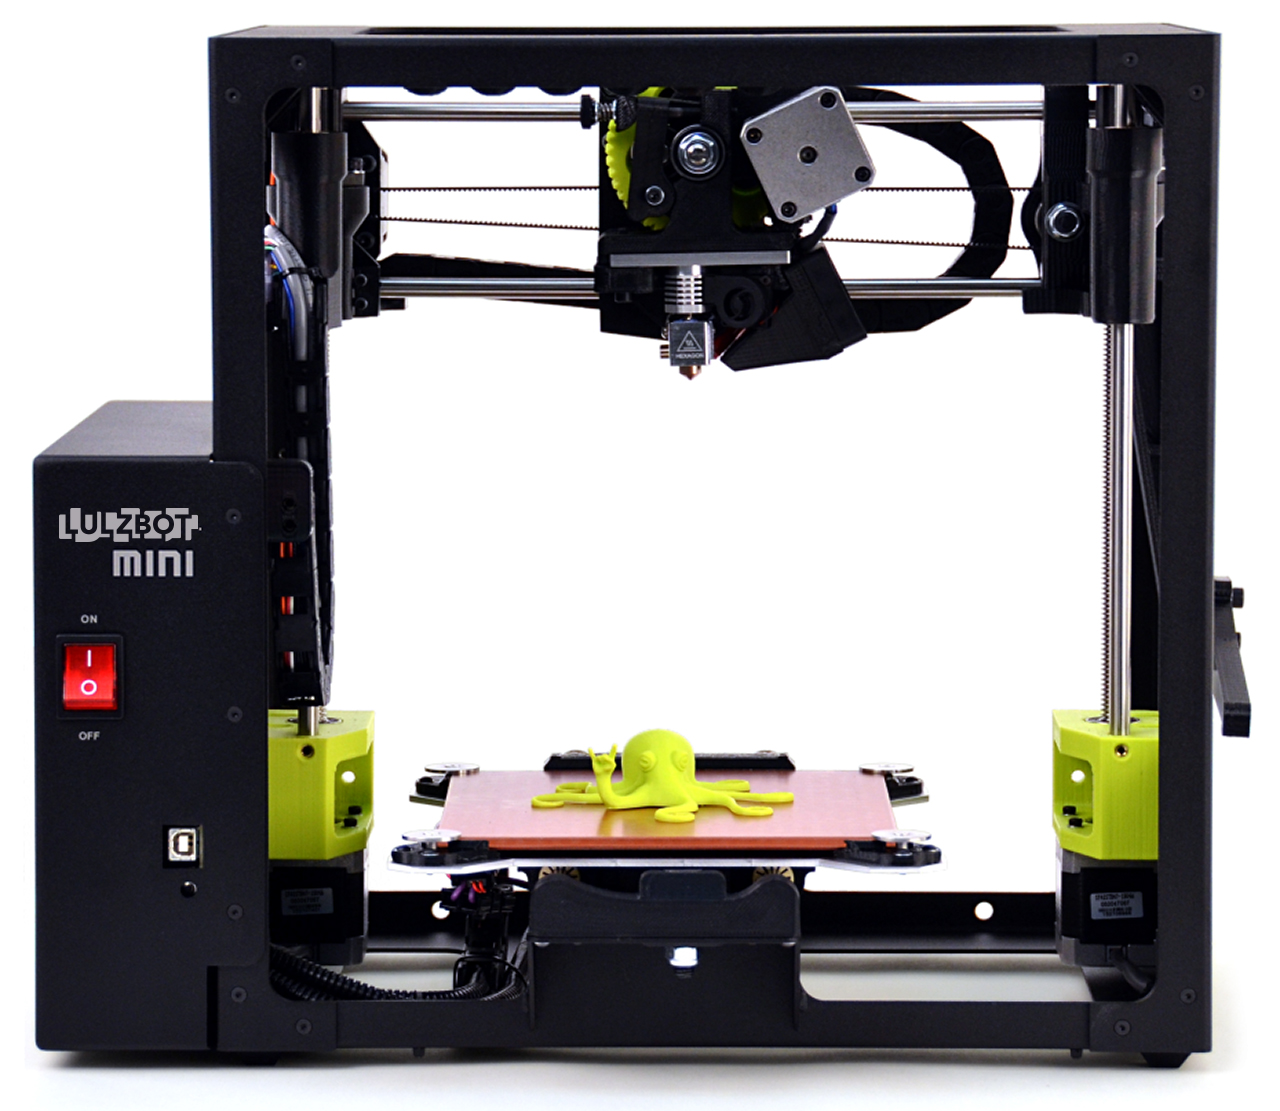 Lulzbot_printer_mini.jpg